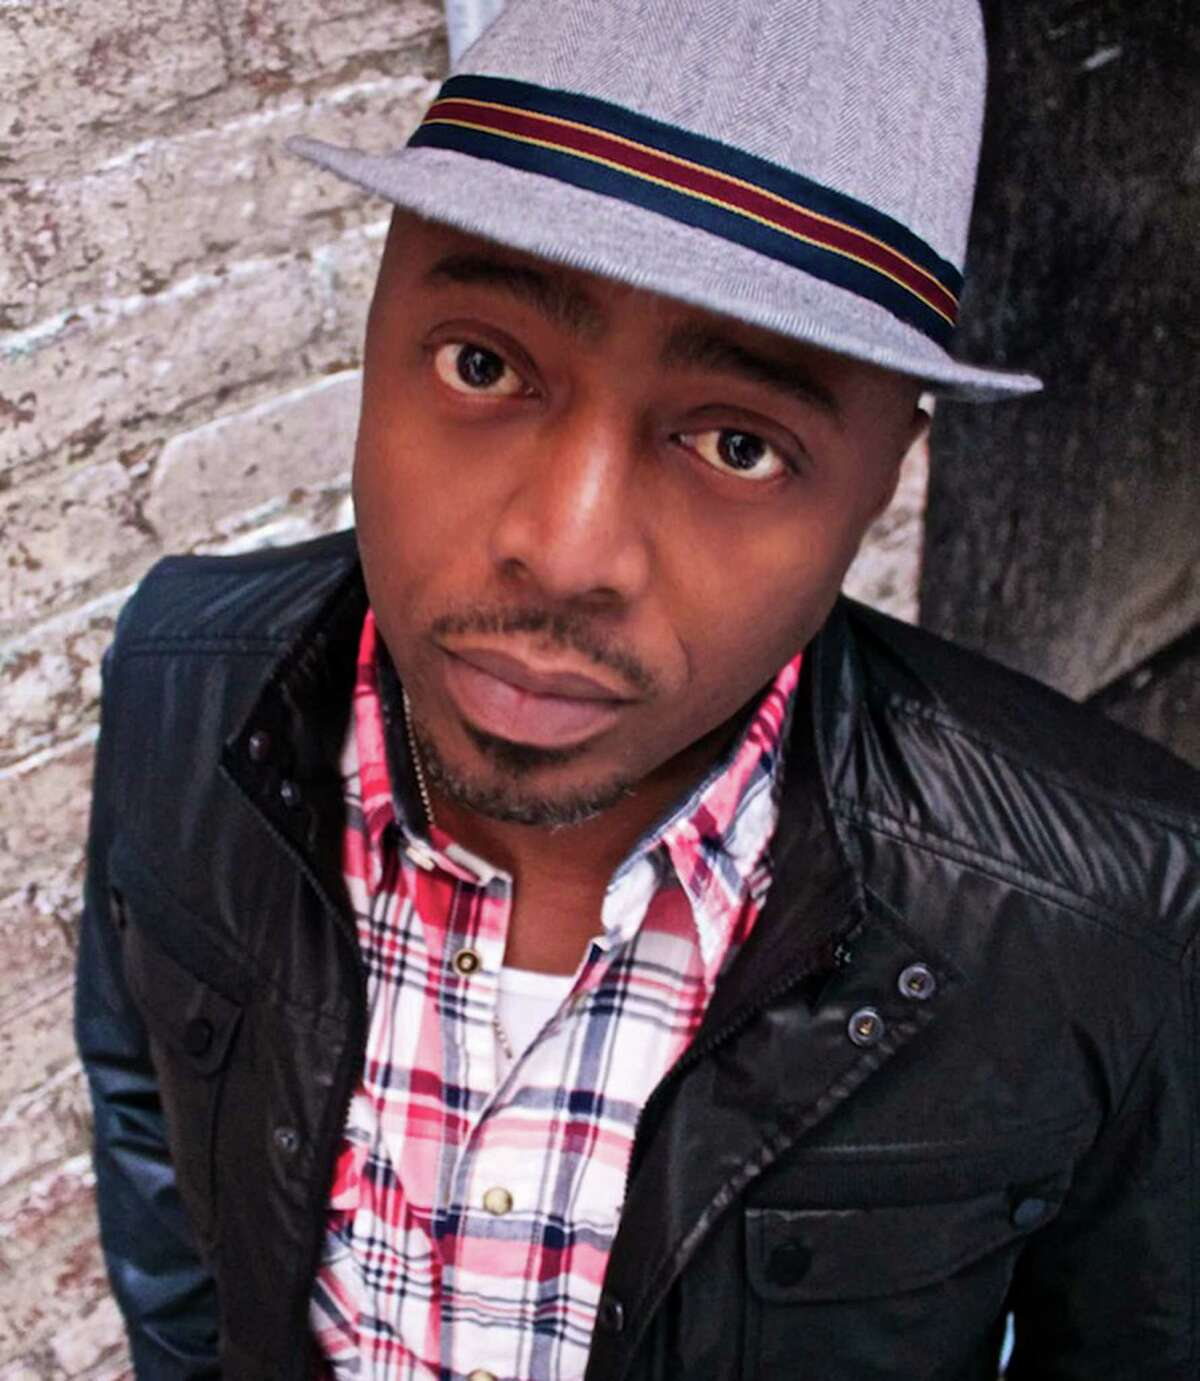 Comedian Donnell Rawlings will perform four shows at COMIX Mohegan Sun, Thursday, April 21, through Saturday, April 23.